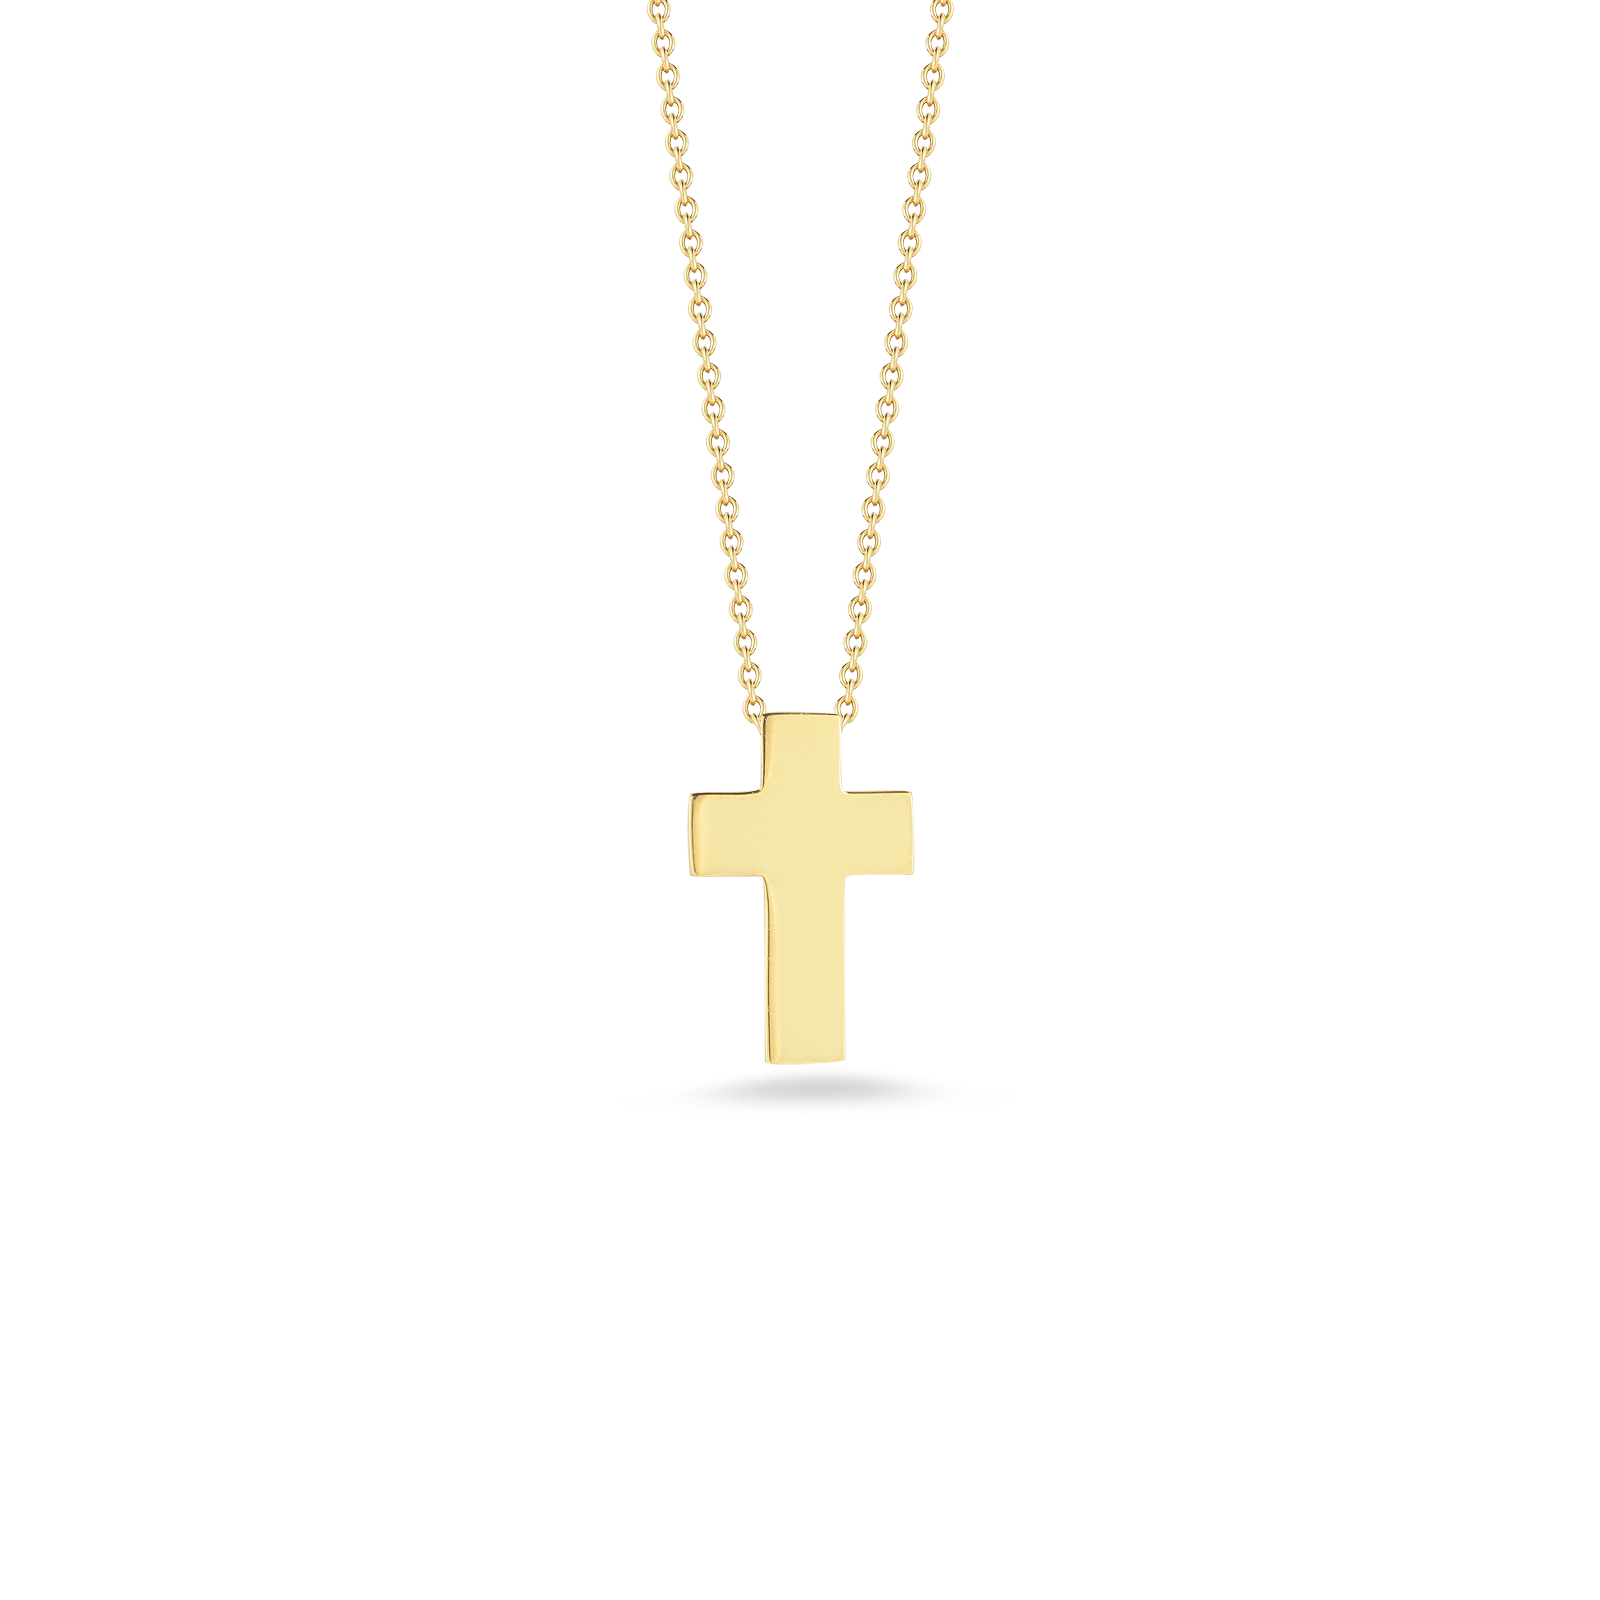 Italian Design Gifts Italian Gold Cross Pendant For Gift By Roberto Coin